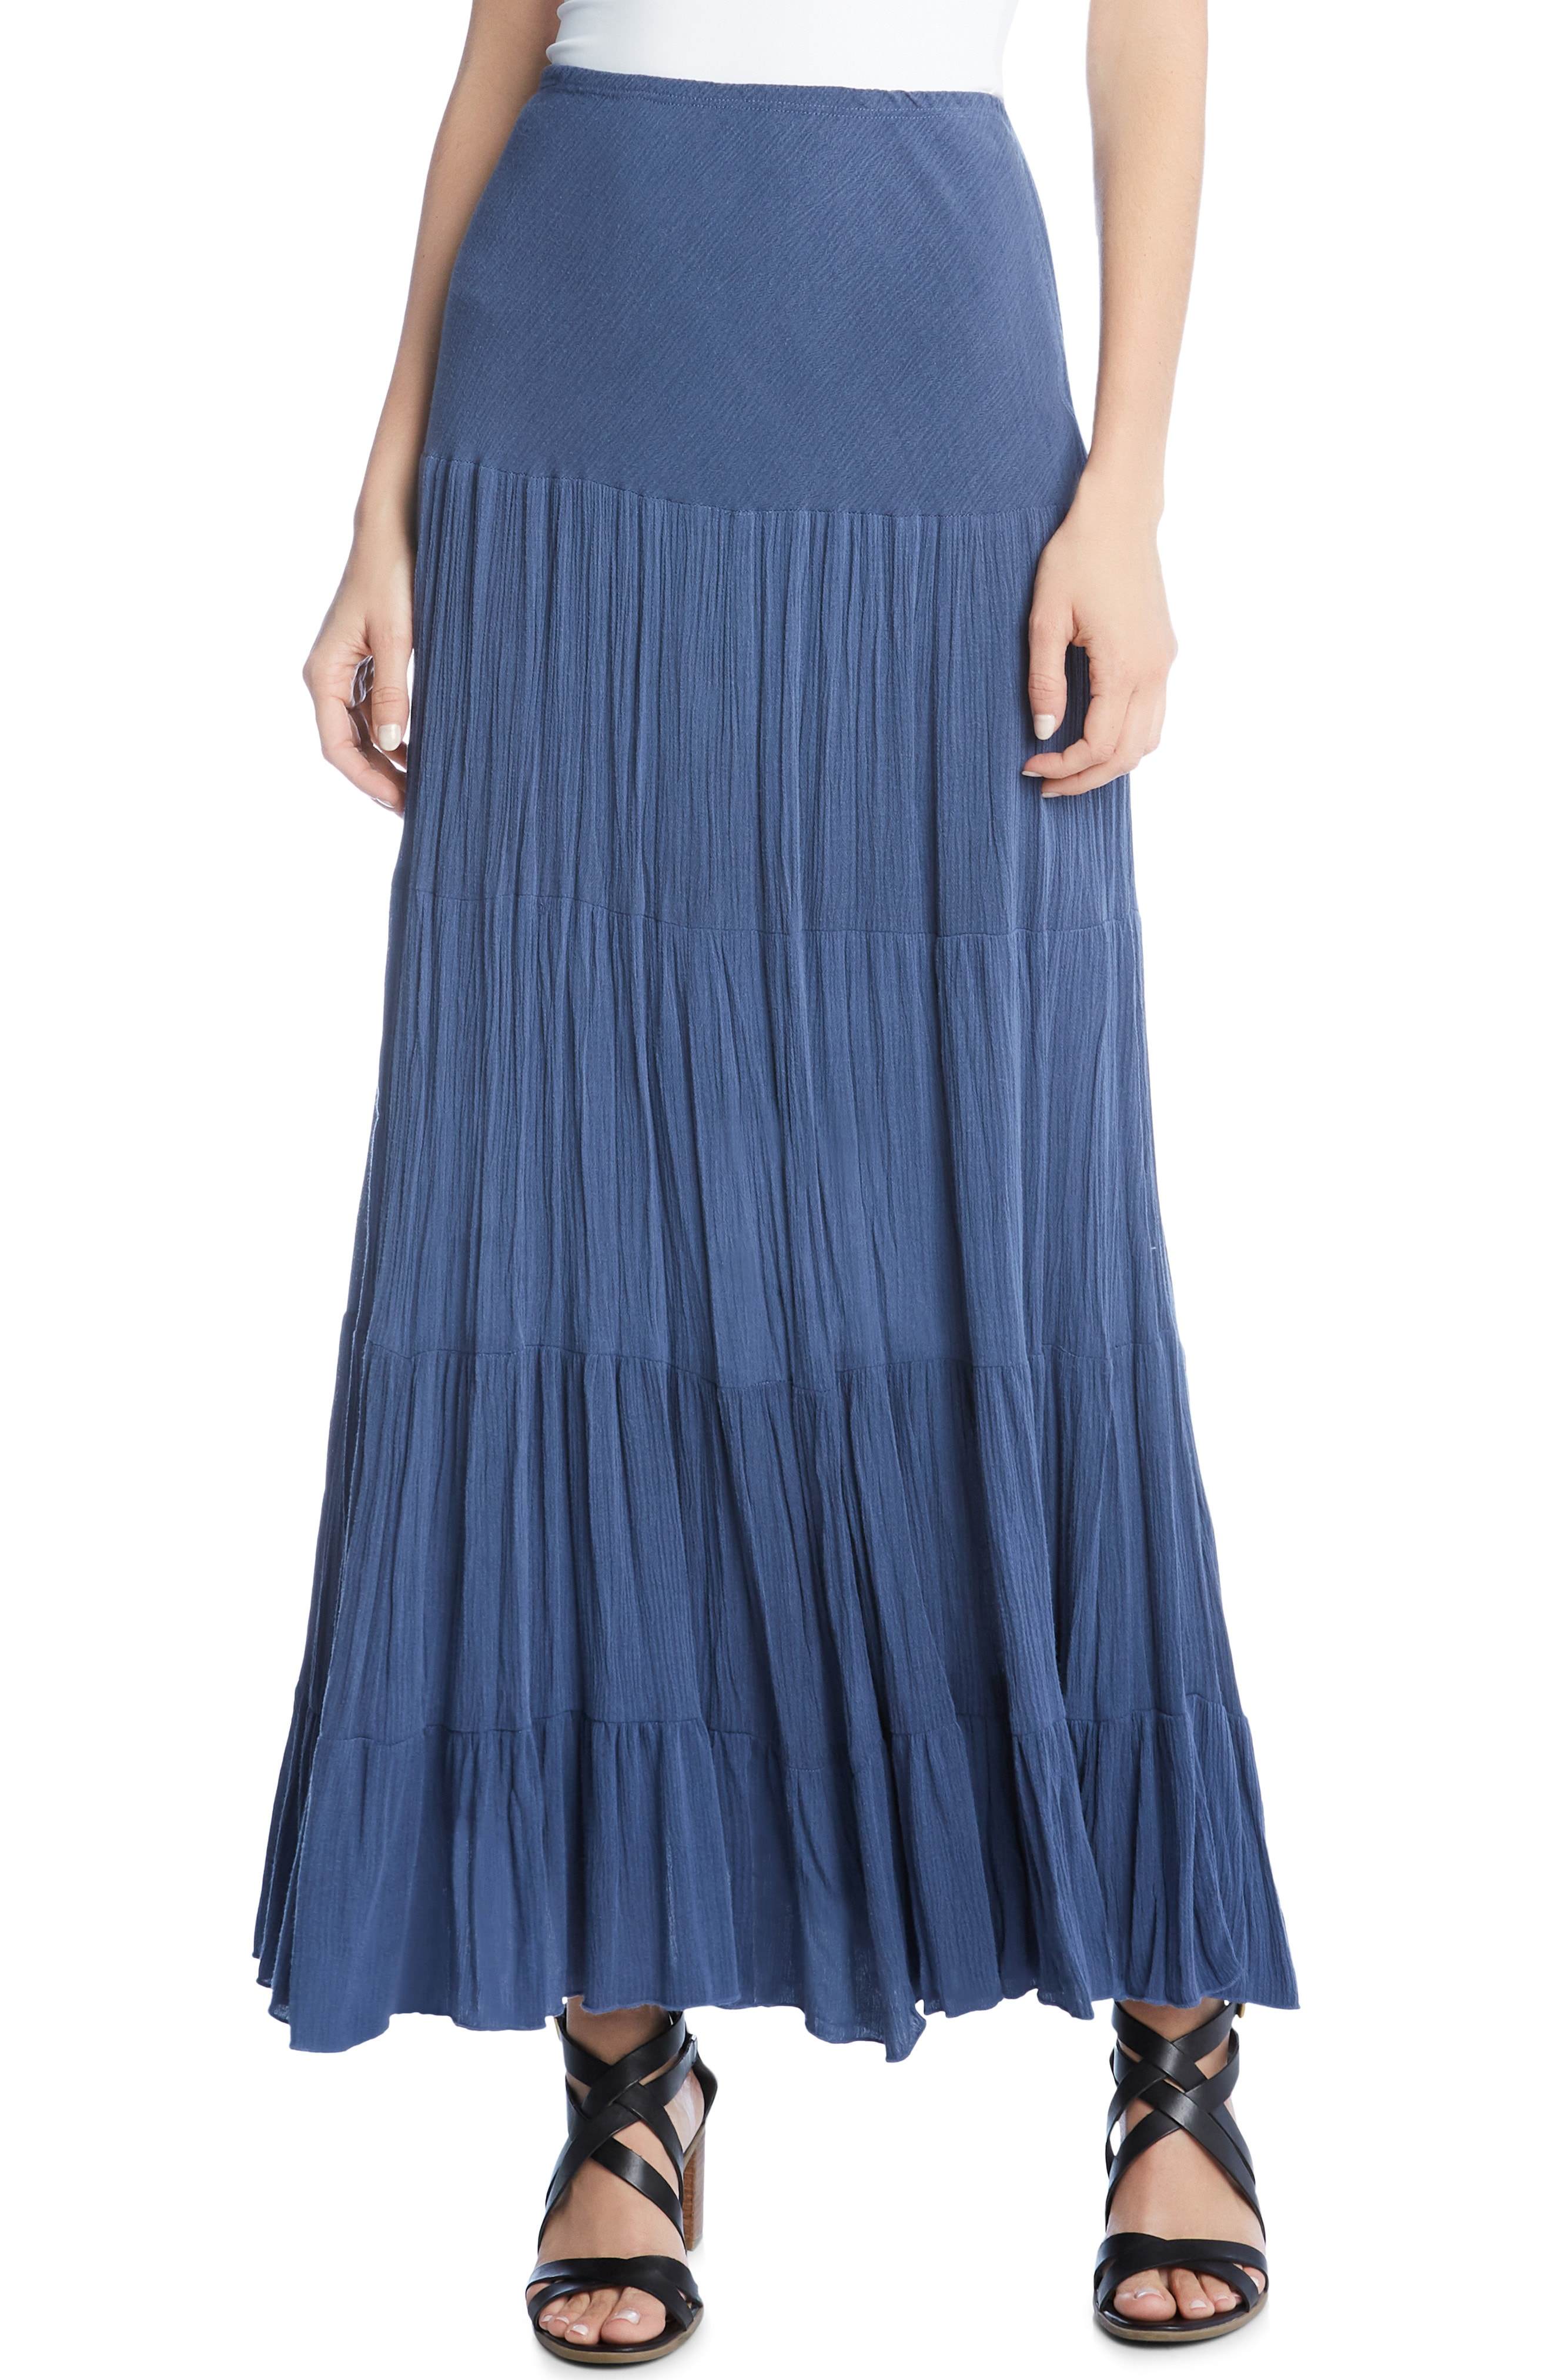 Sexy and elegant: the maxi skirt